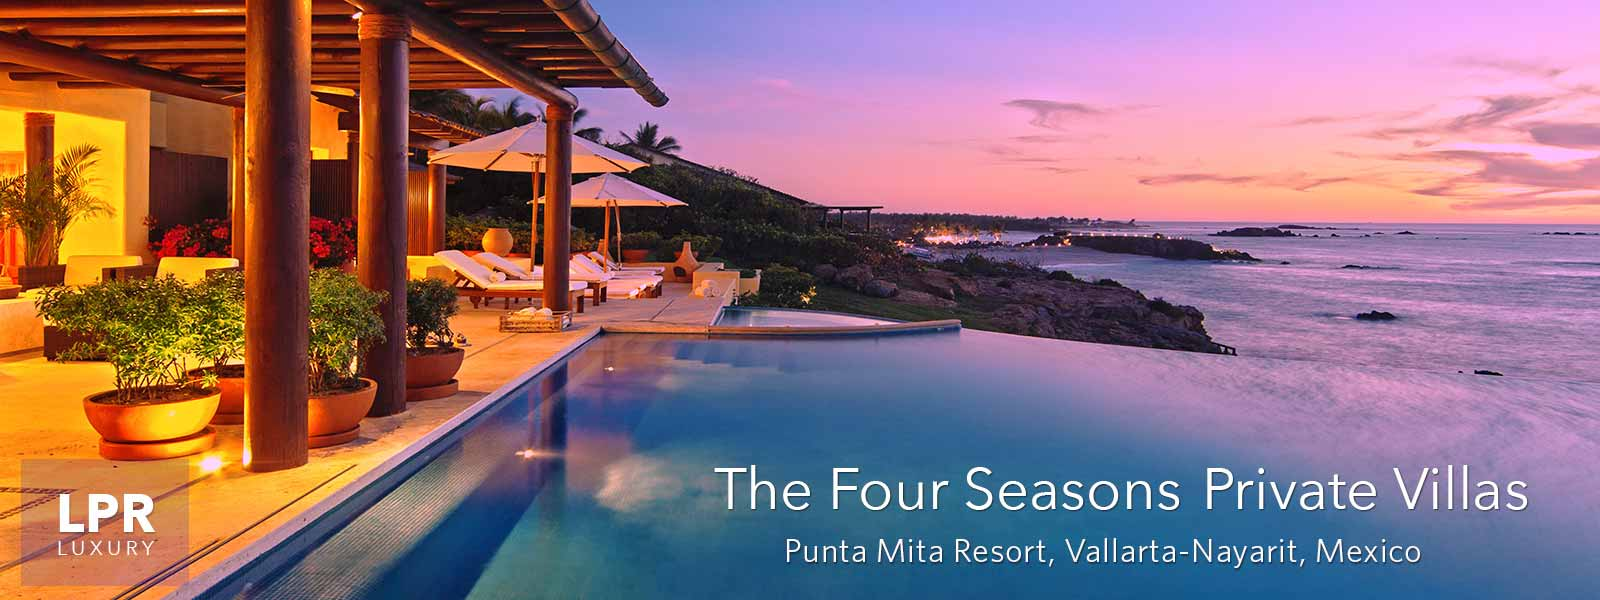 The Four Seasons Private Villas - Luxury Punta Mita Real Estate and Vacation Villa Rentals